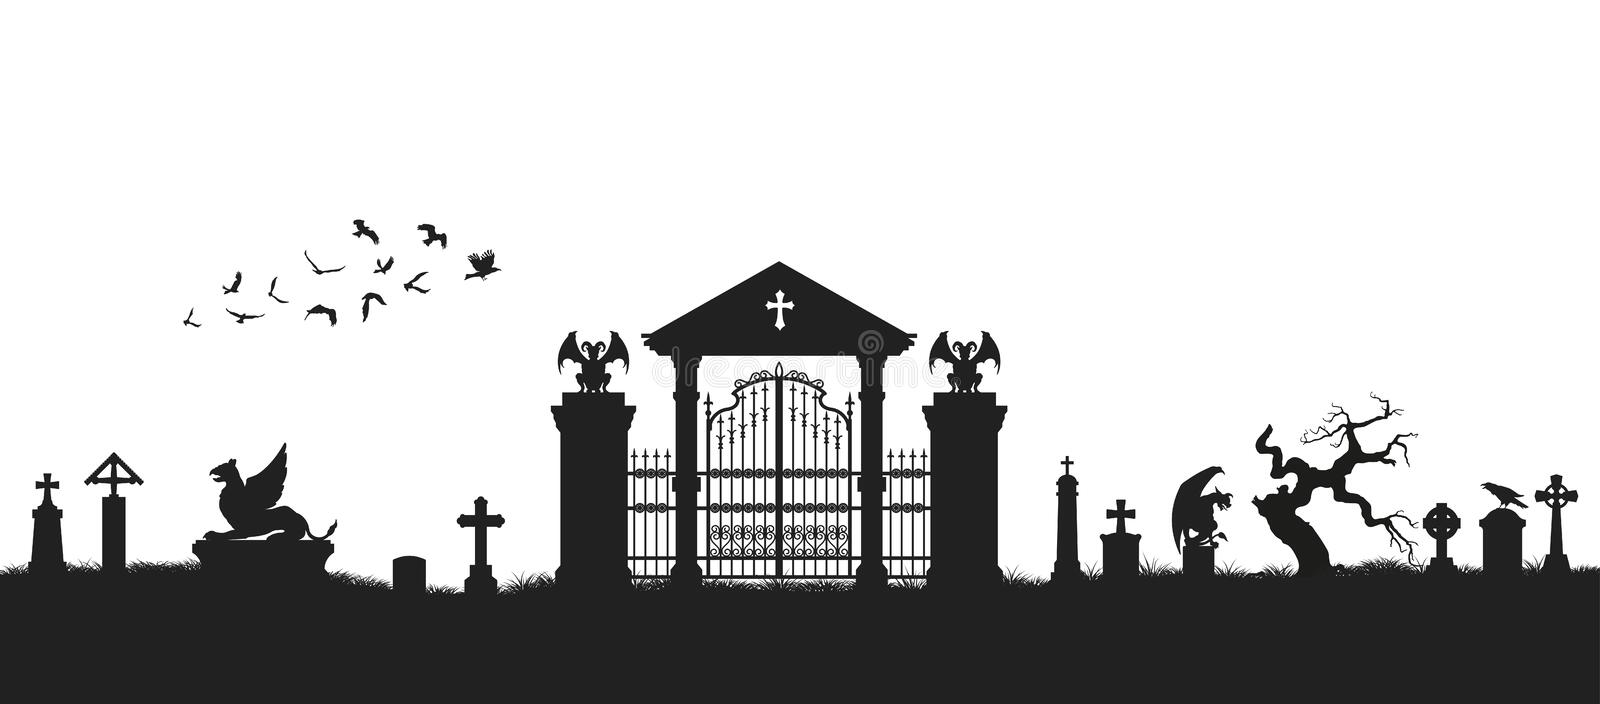 Black silhouette of gothic cemetery. Medieval architecture. Graveyard with gate, crypt and tombstones. Halloween scene. Vector illustration royalty free illustration